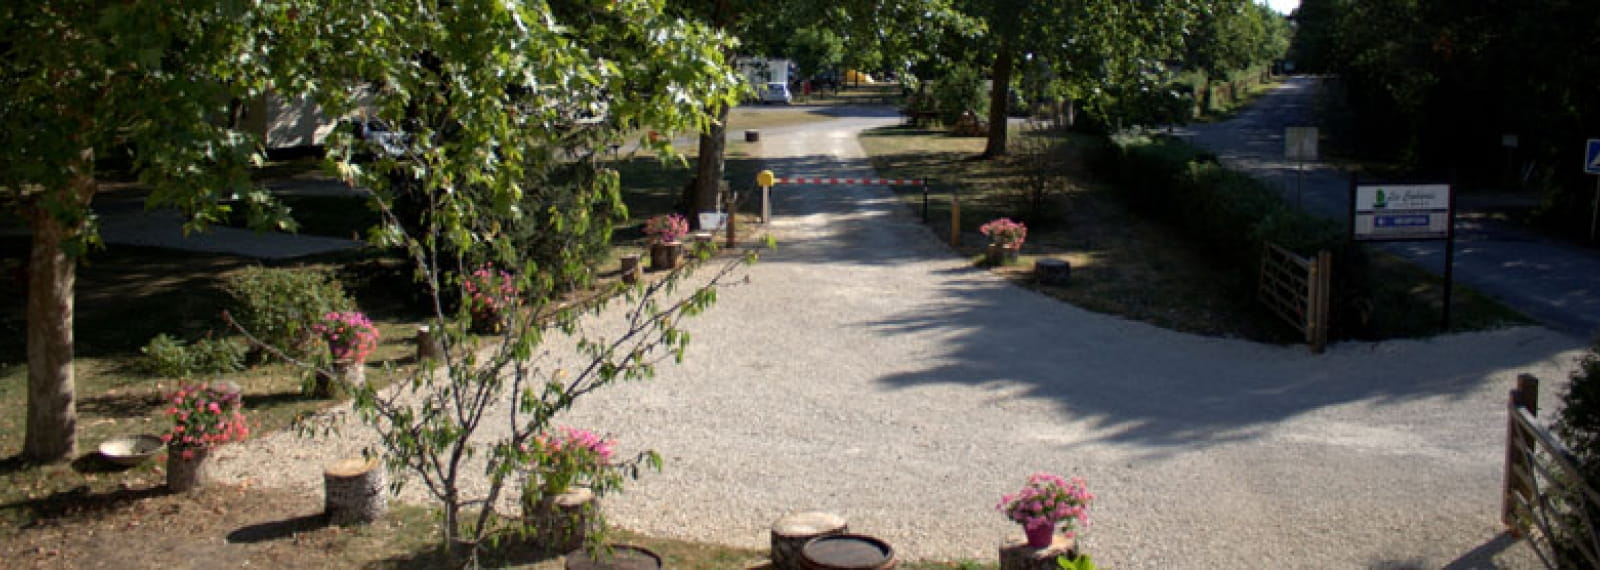 1Camping-les-cochards-entree-seigy©Camping-Les-Cochards